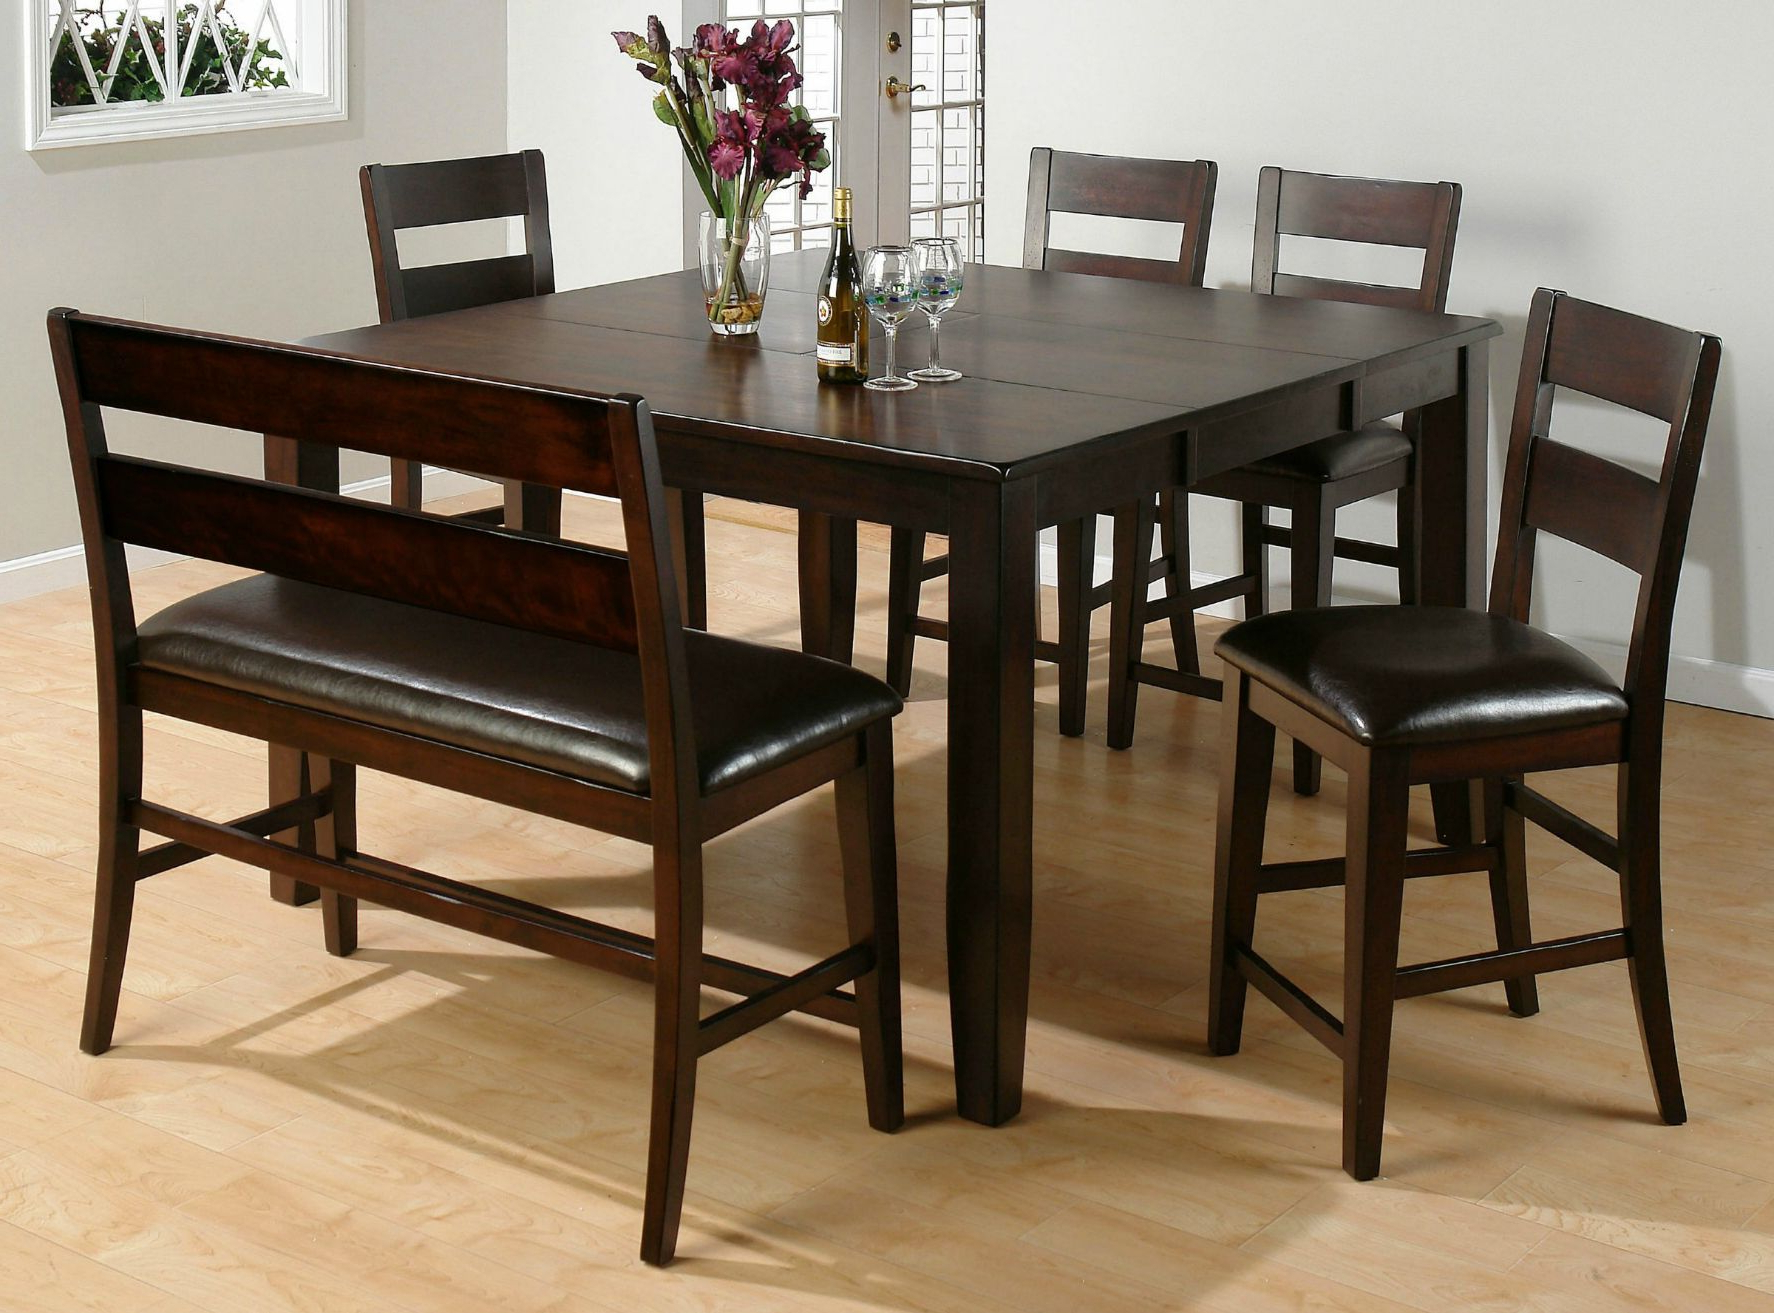 Recent 26 Dining Room Sets (Big And Small) With Bench Seating (2020 In Transitional 4 Seating Square Casual Dining Tables (View 18 of 30)